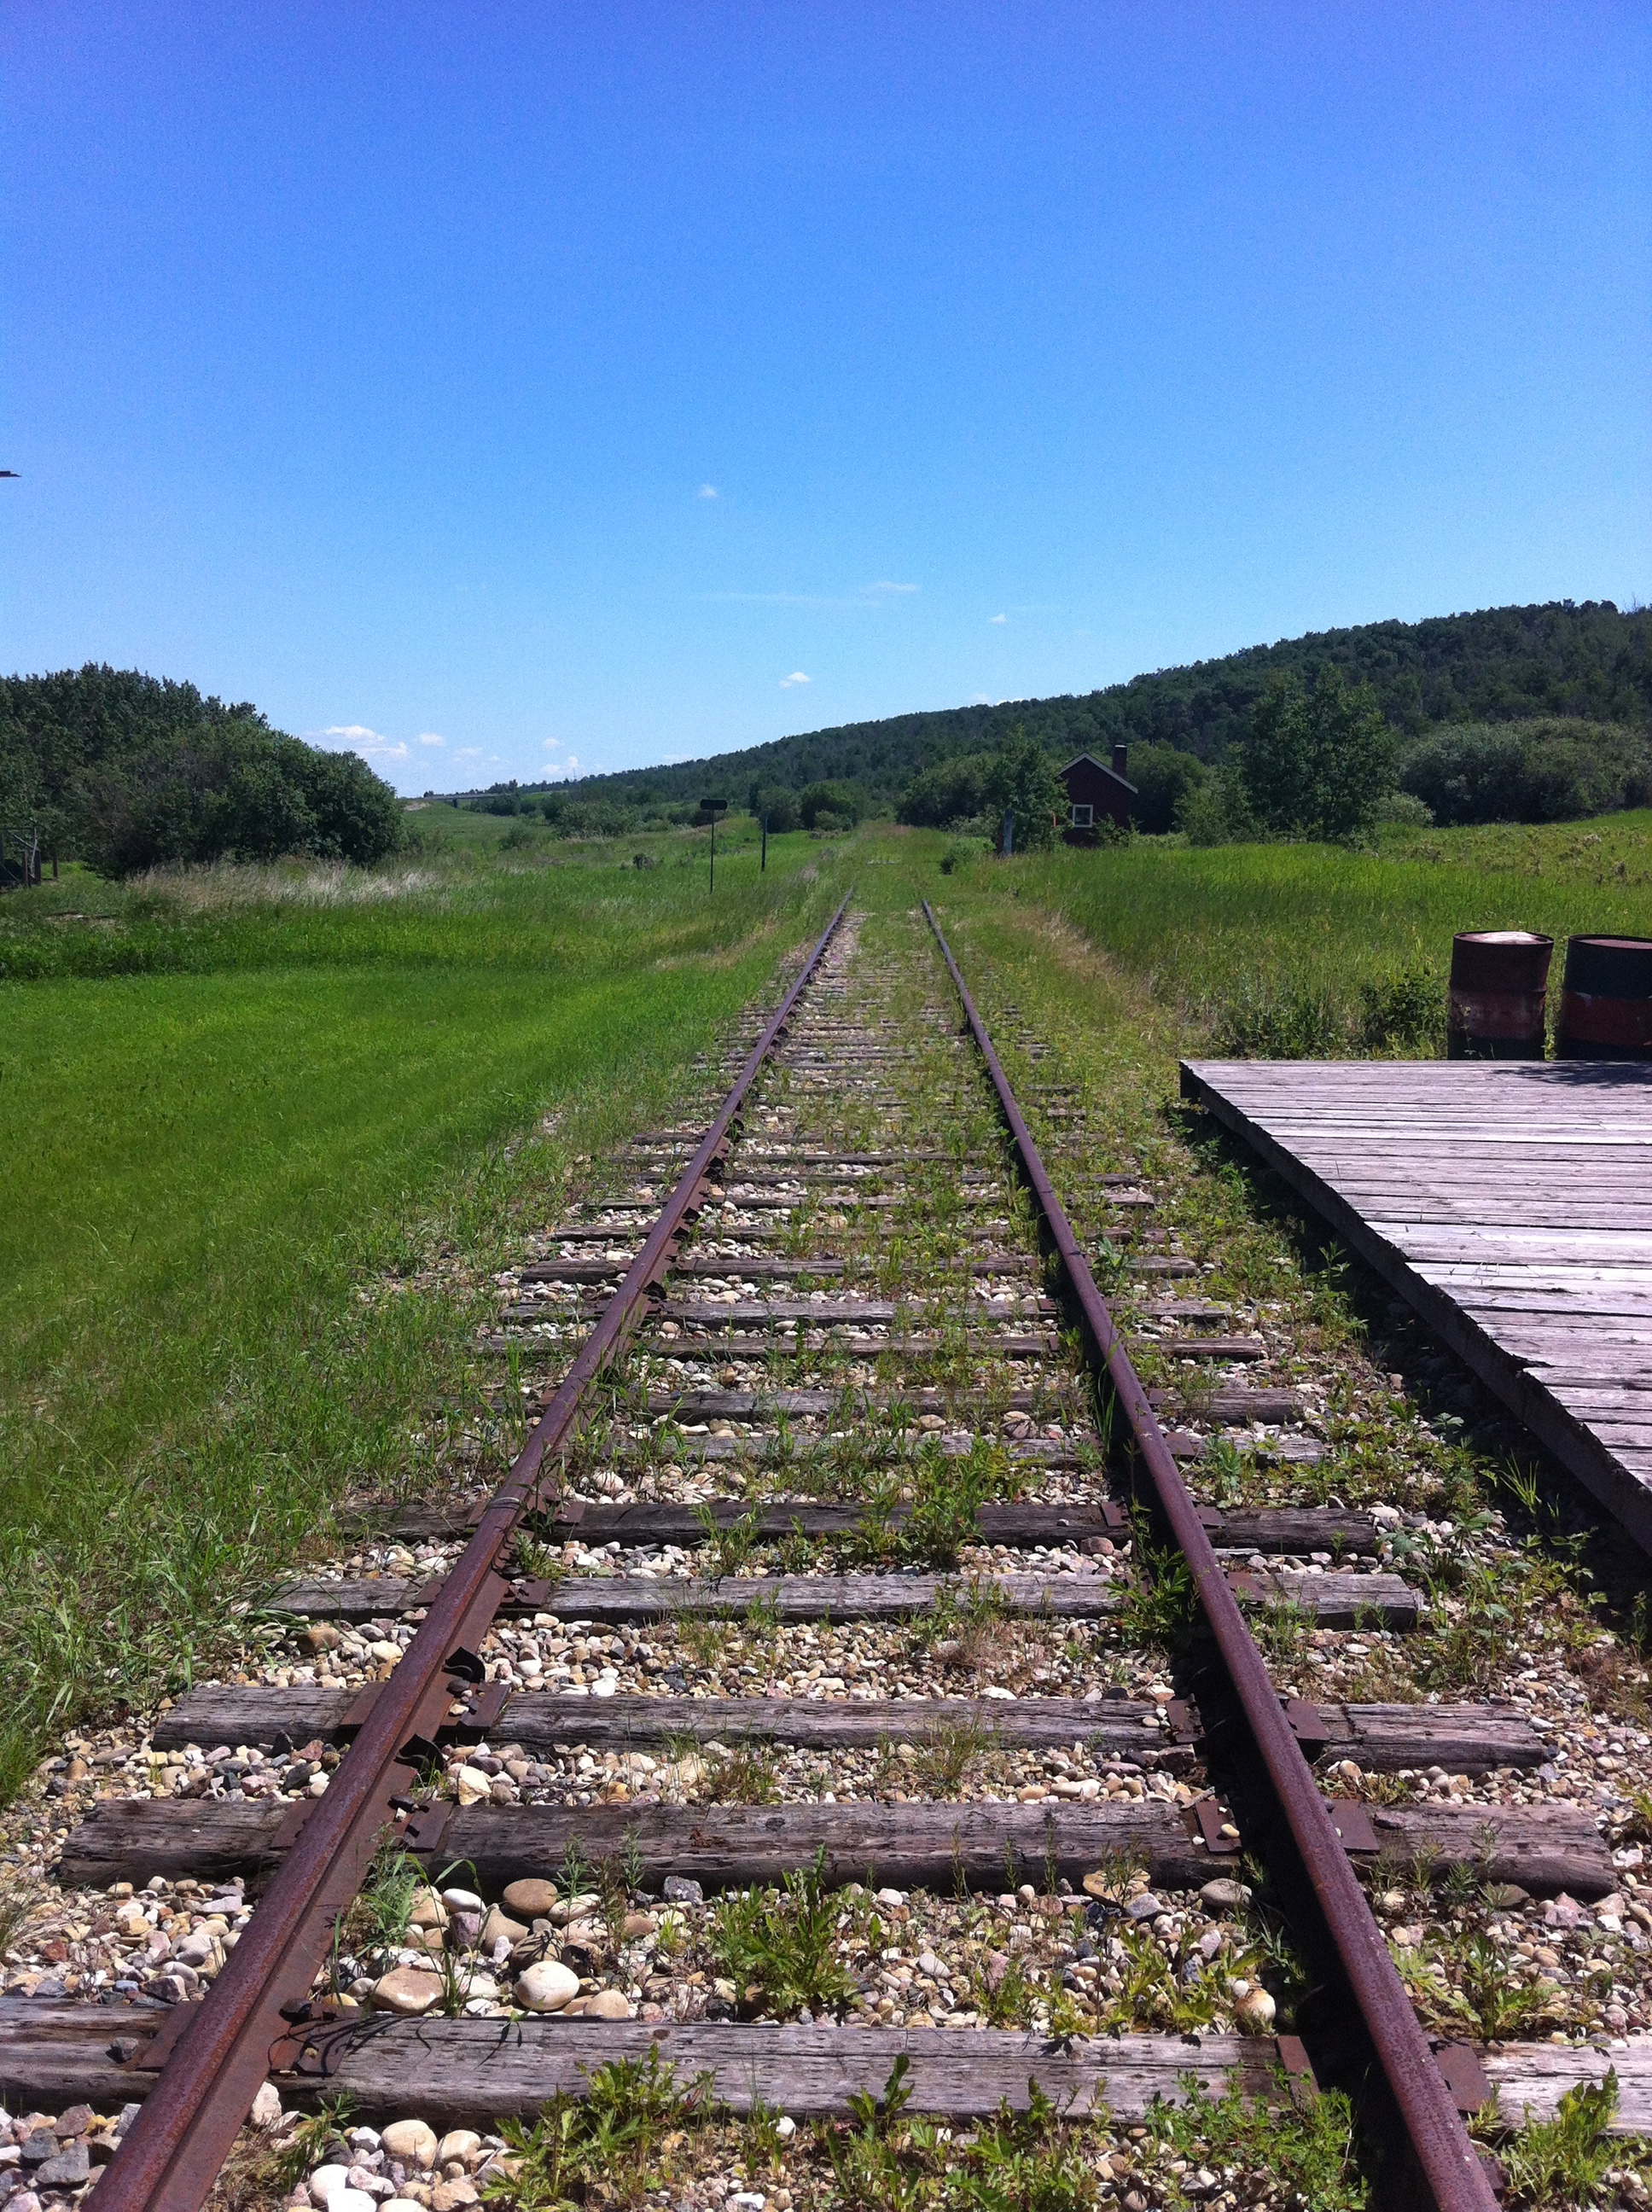 The train track disappears into the grassland in both directions.